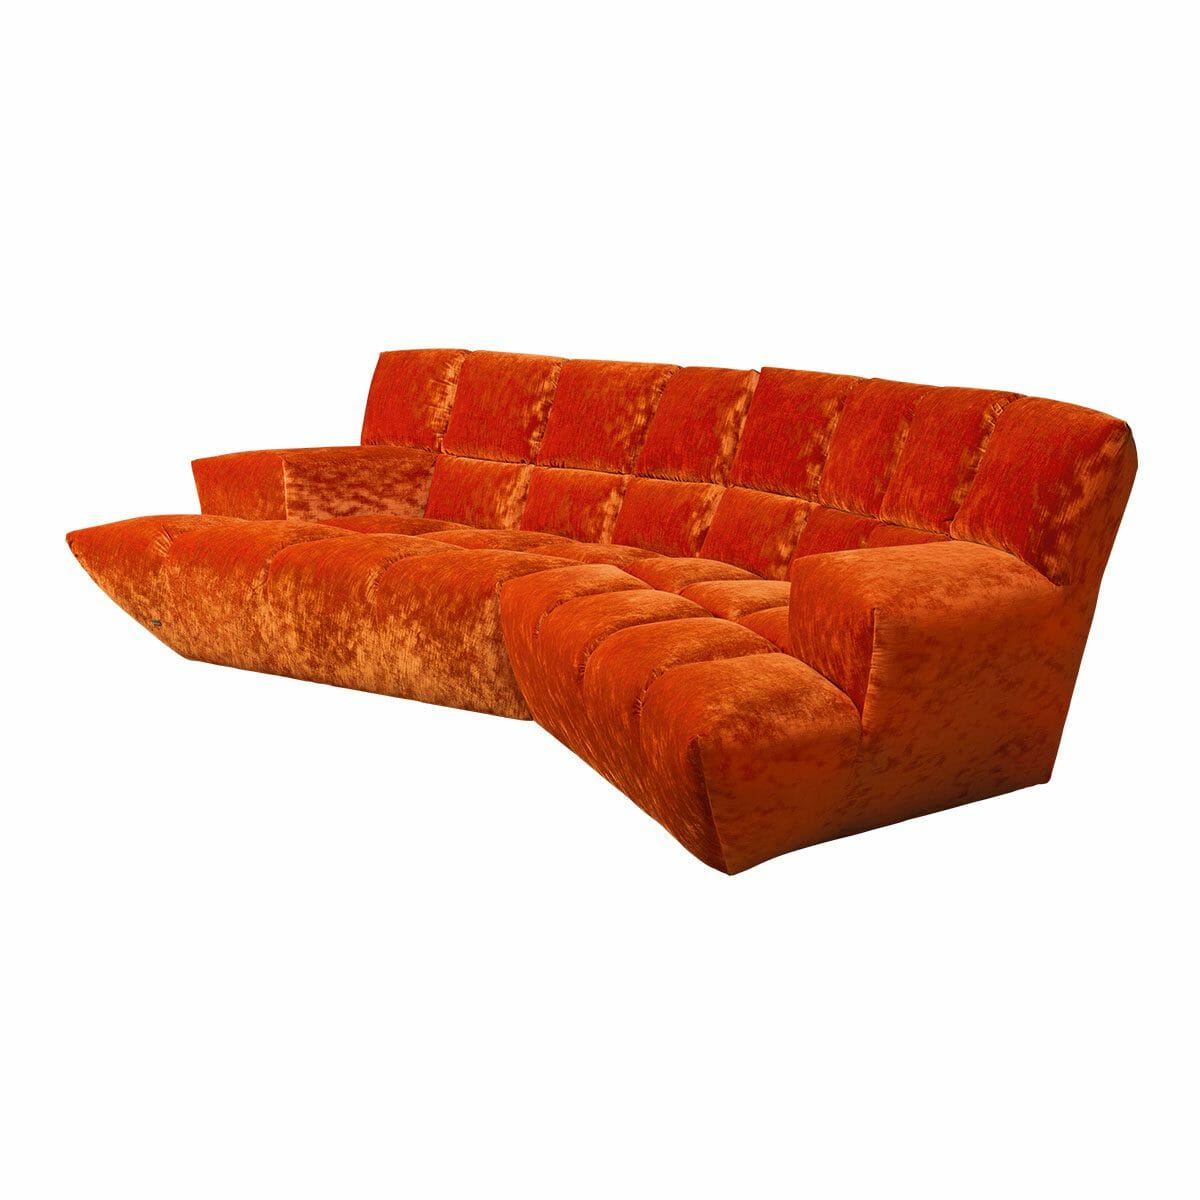 Bretz Cloud 7 Sofa F154 in Velvet orange